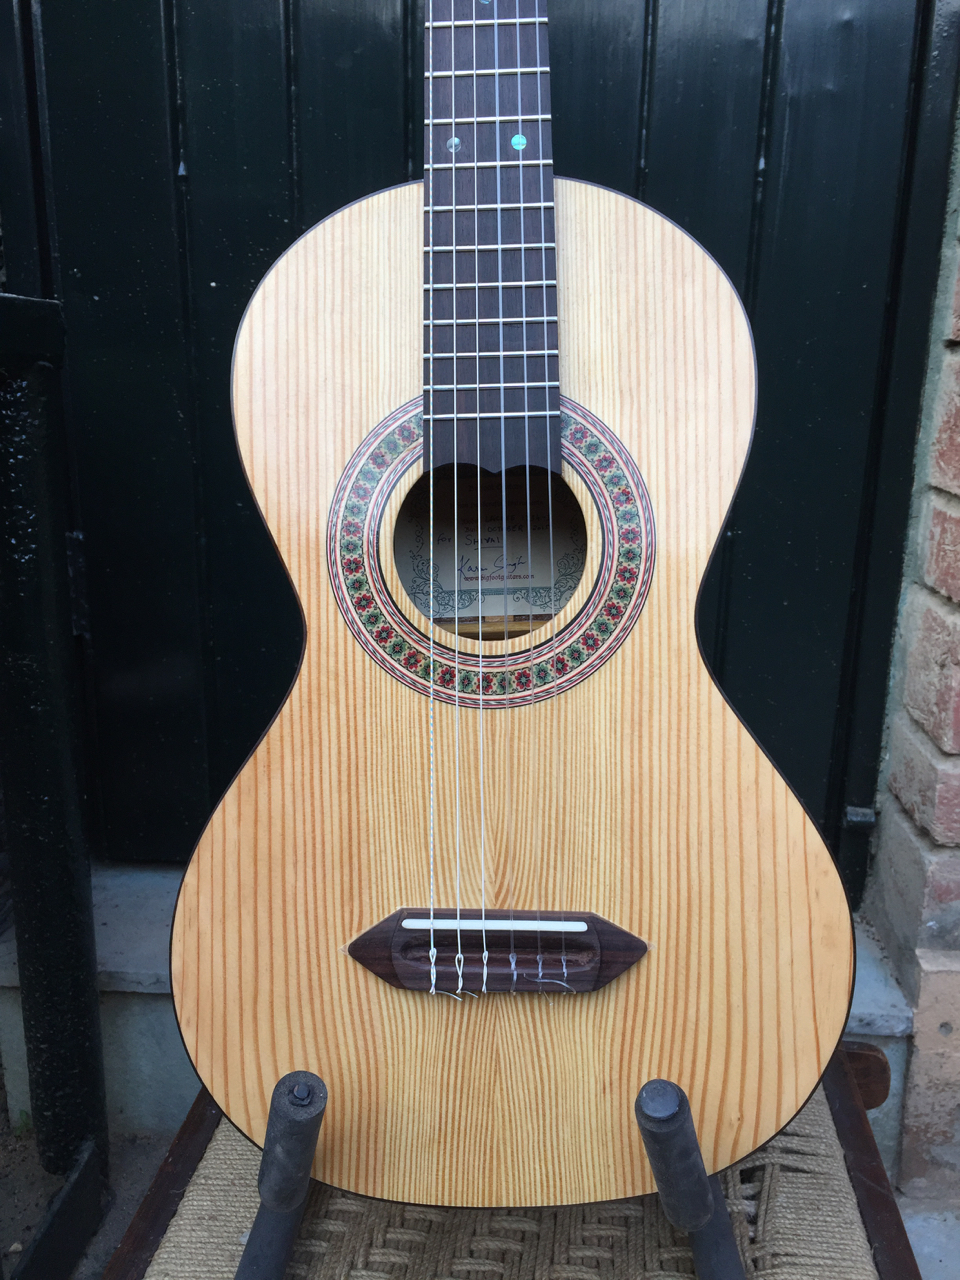 1834 Lacote Nylon String